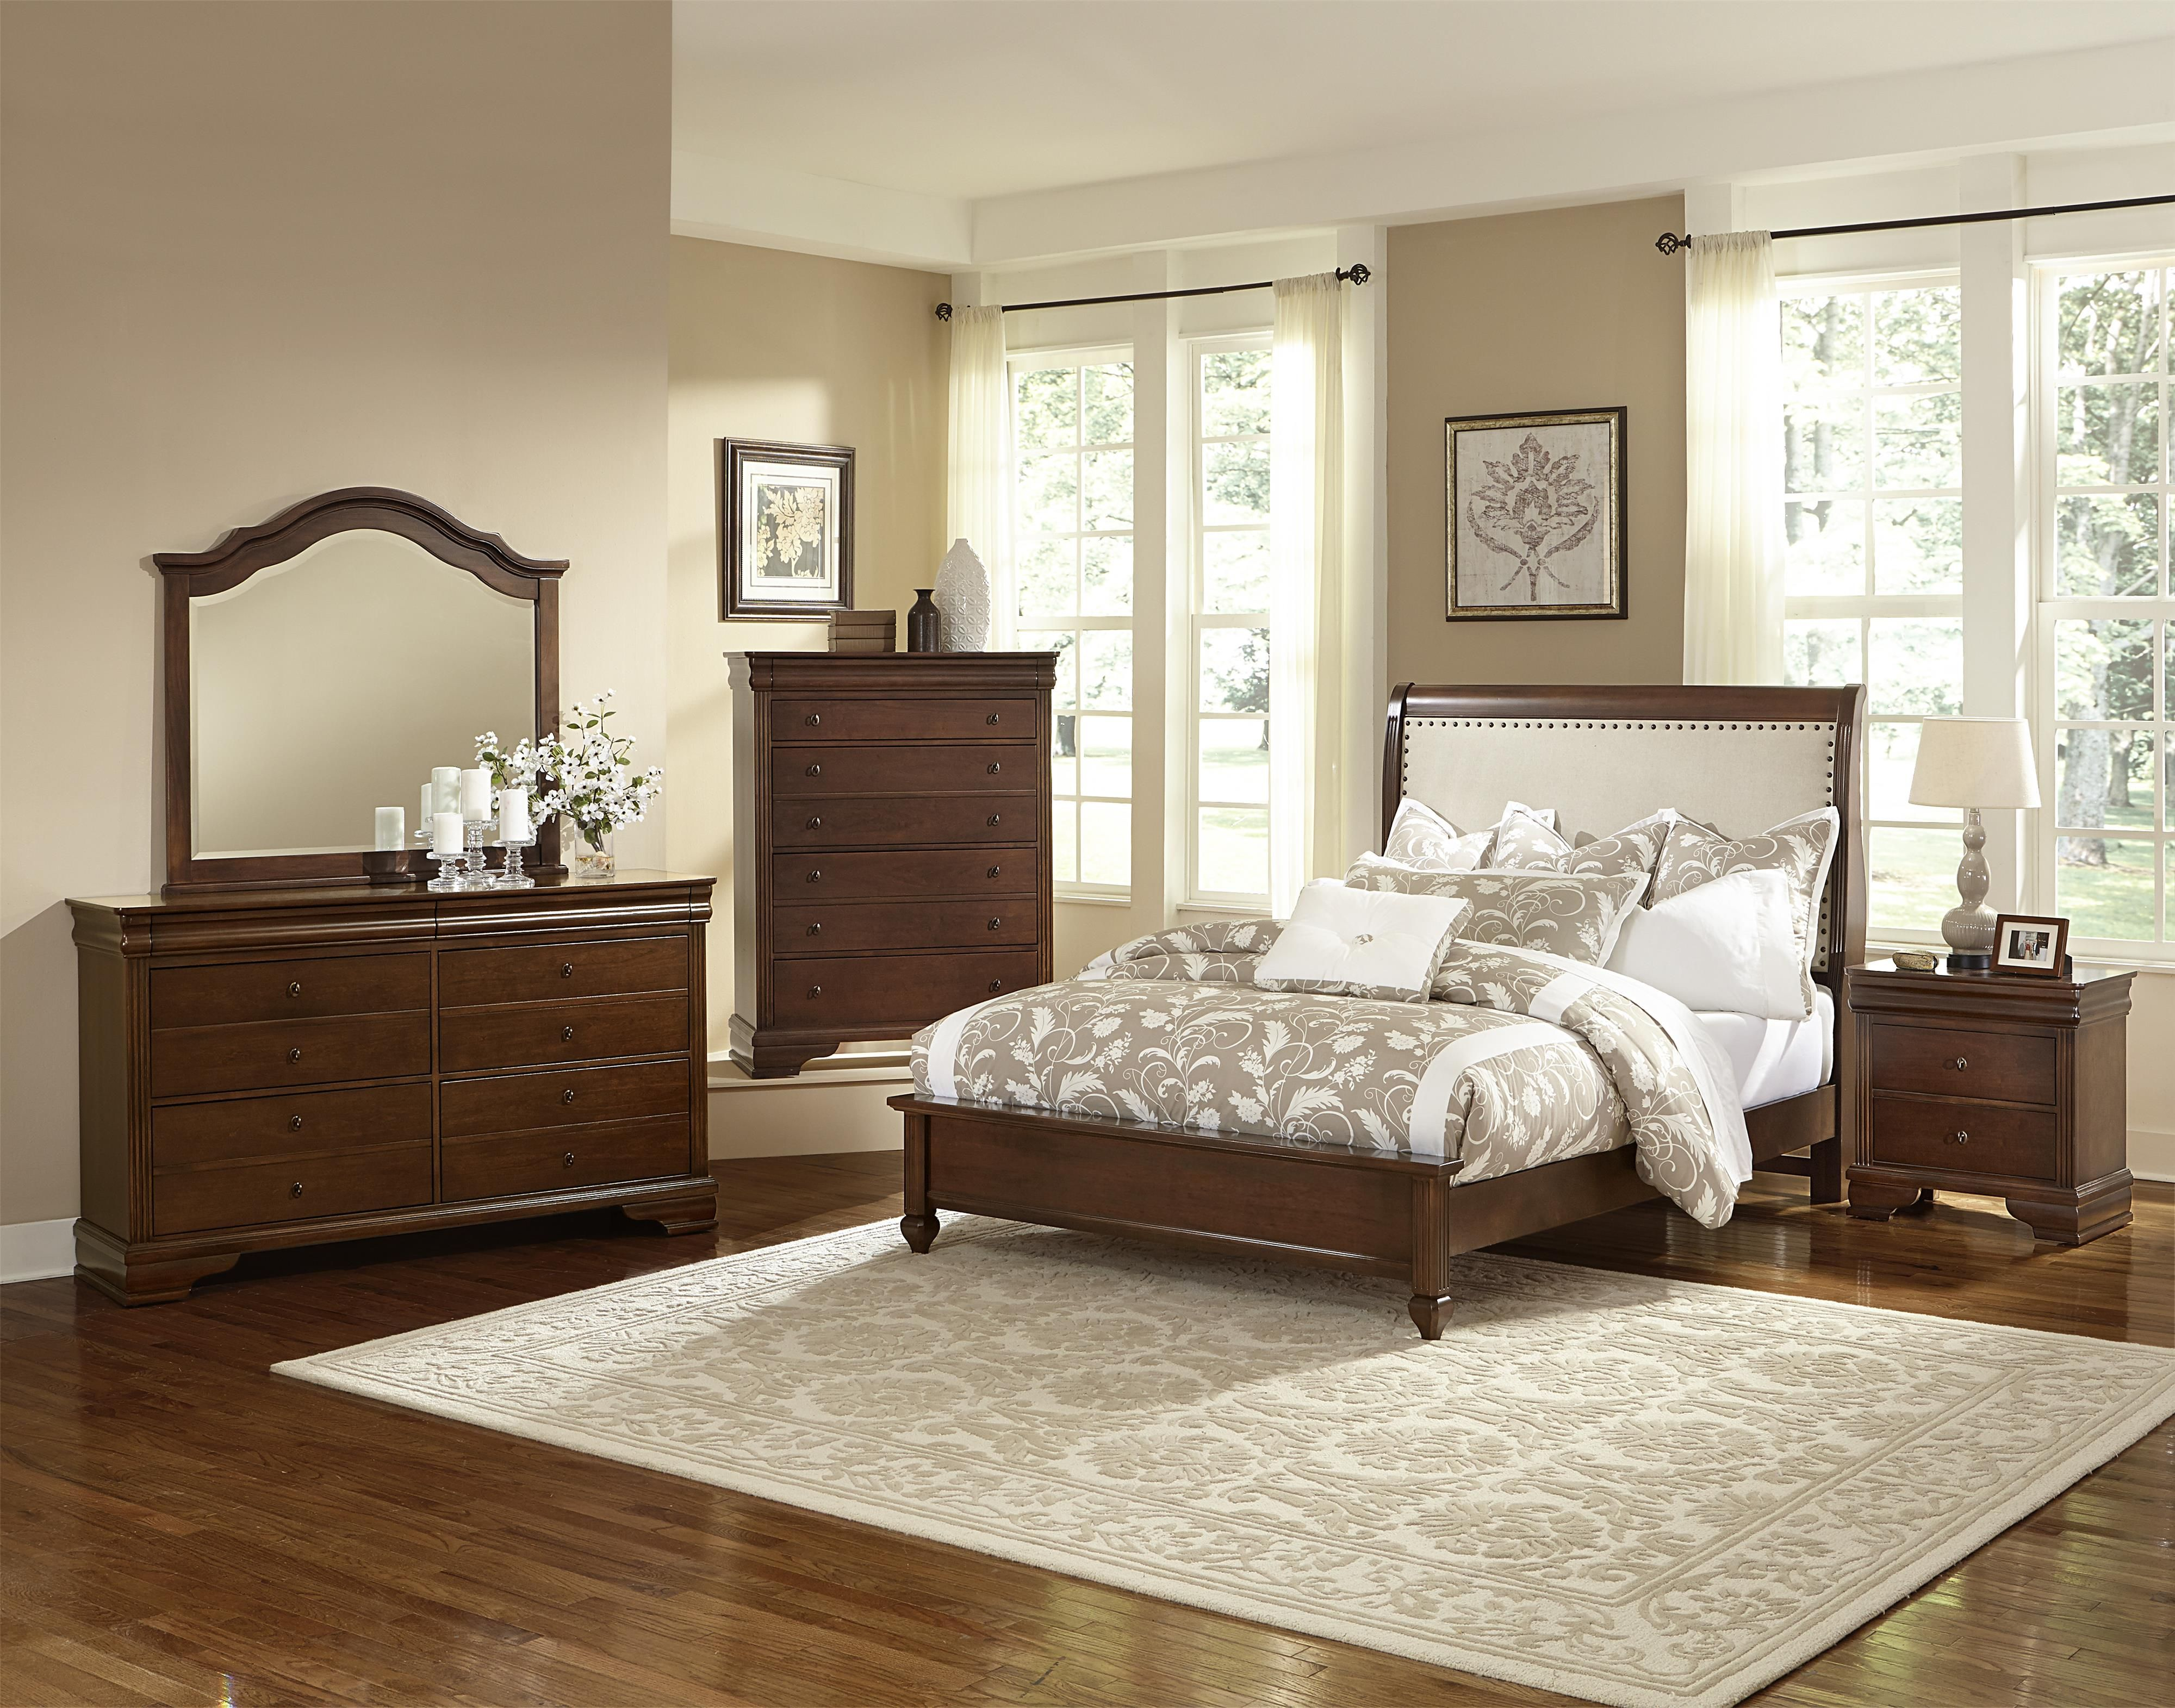 French Market King Bed w/ Upholstered Headboard & Low